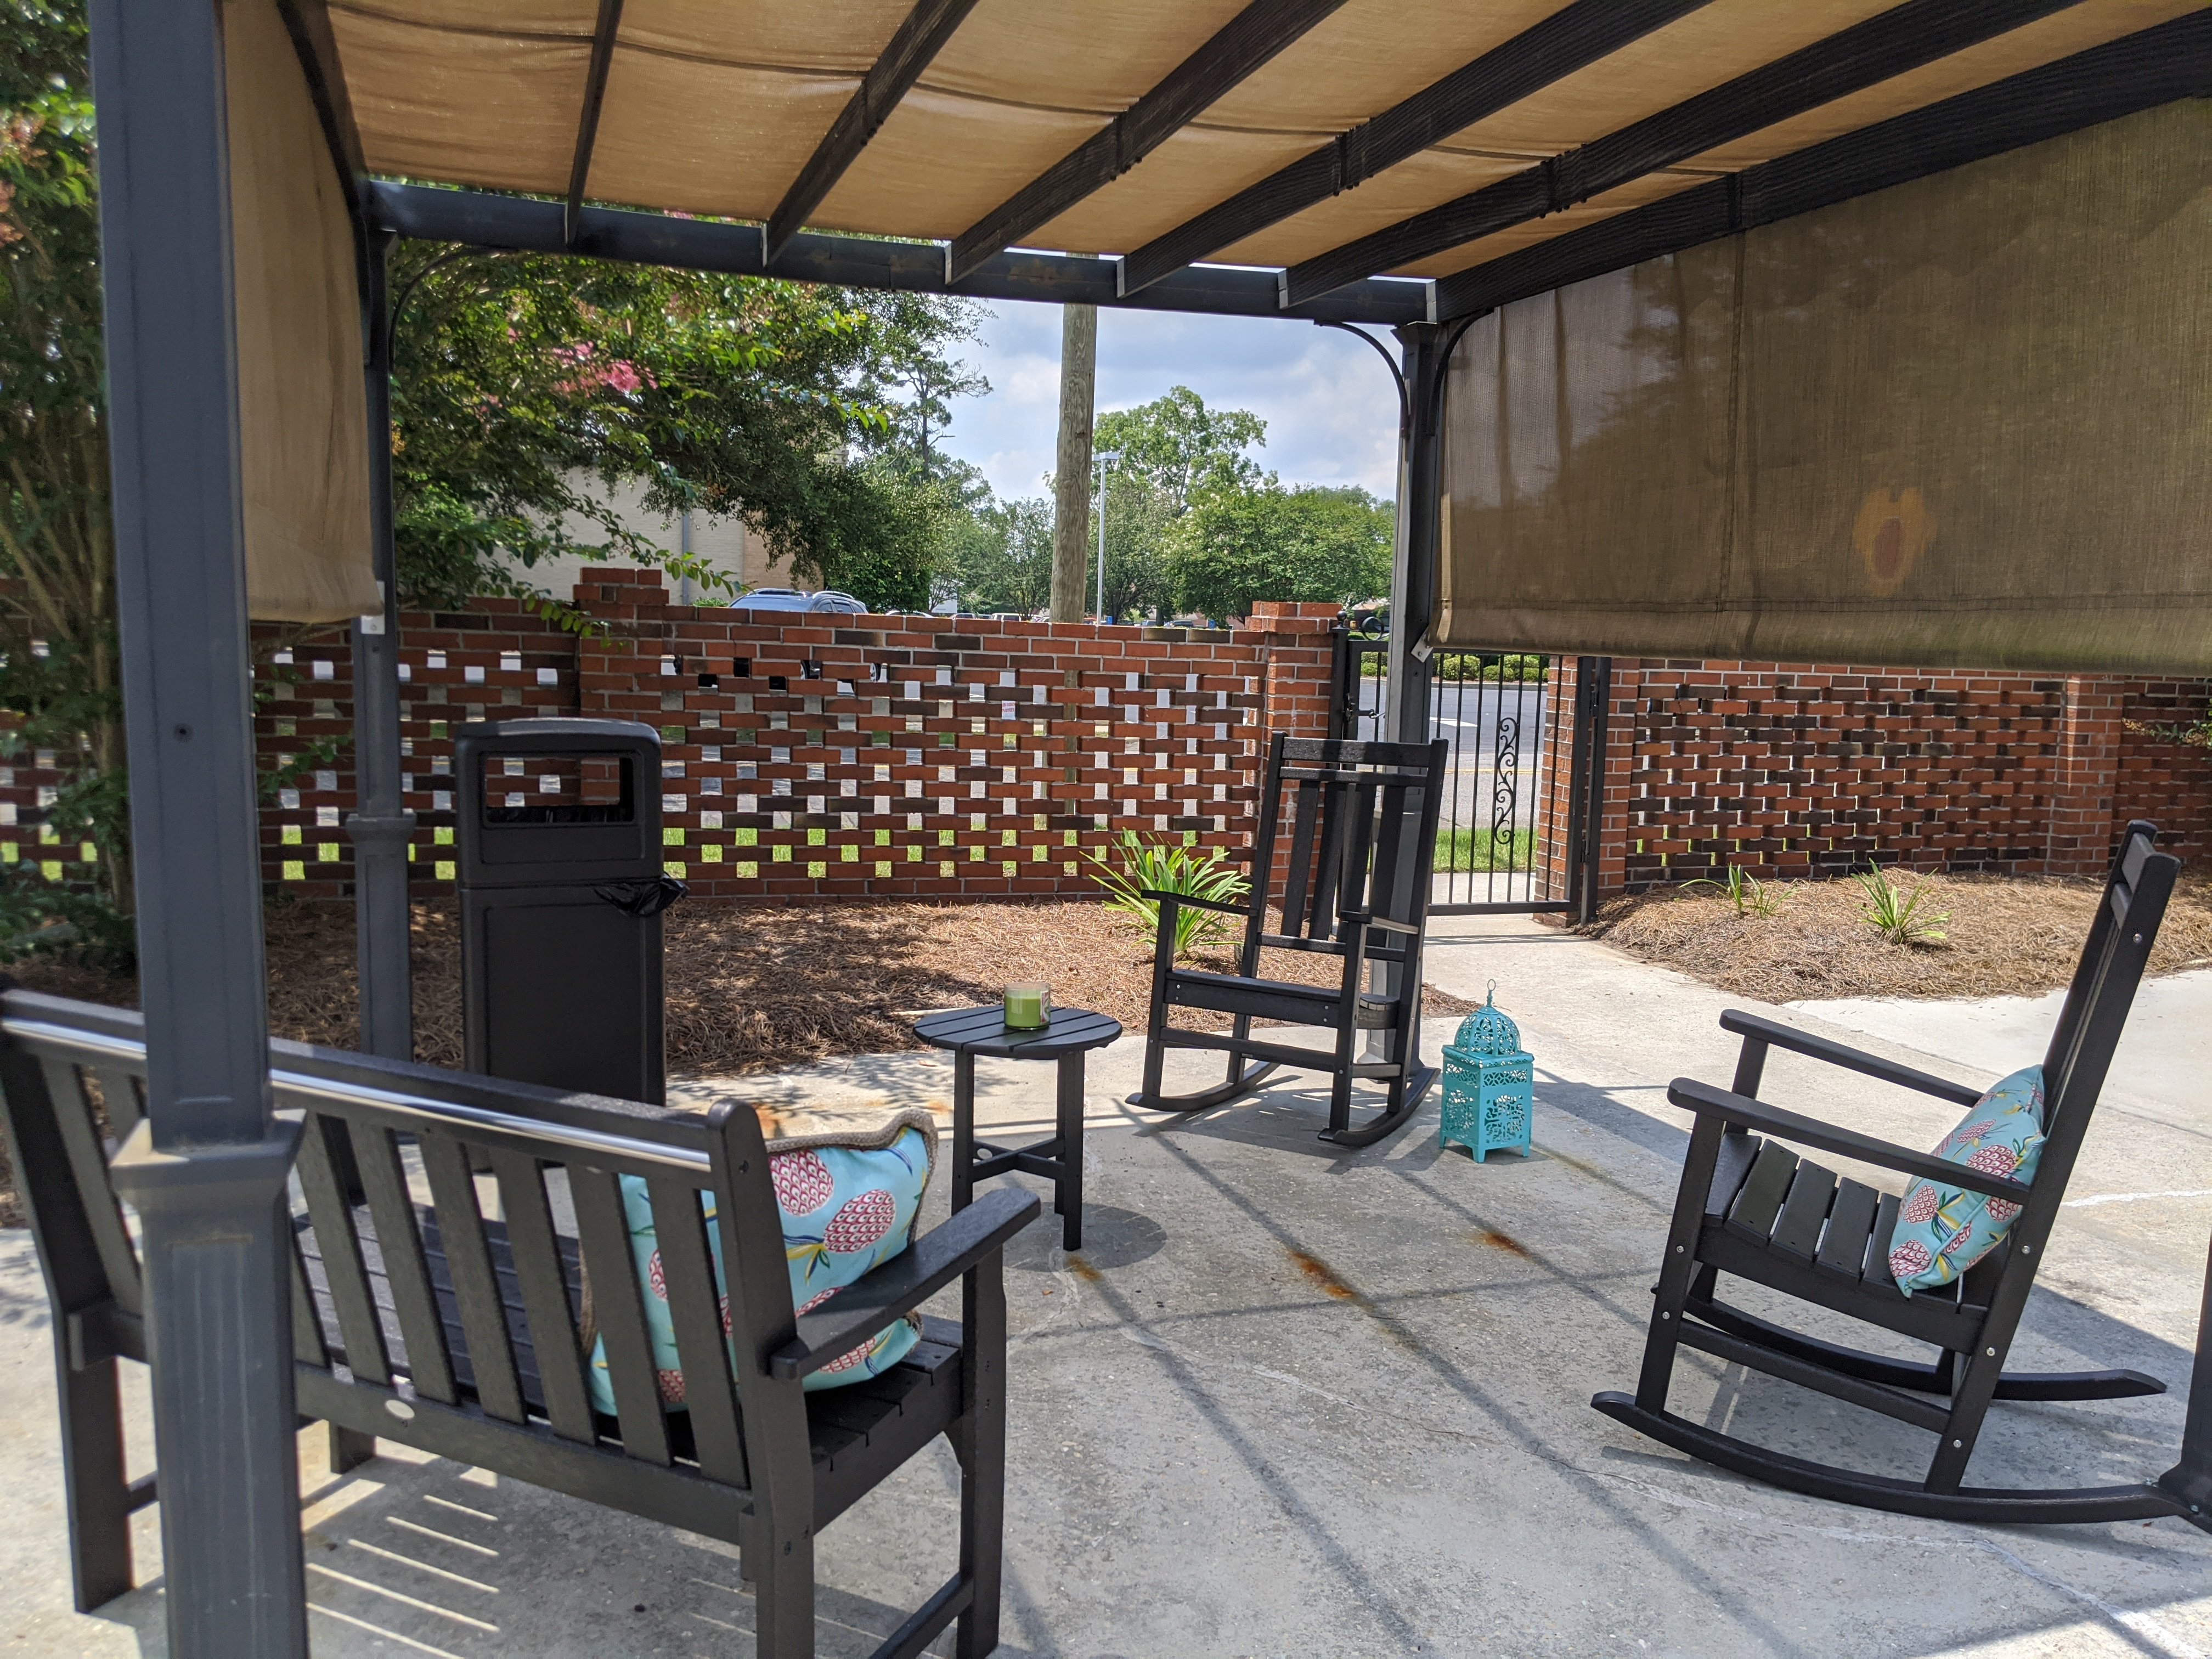 Dogwood Plaza outdoor patio and seating